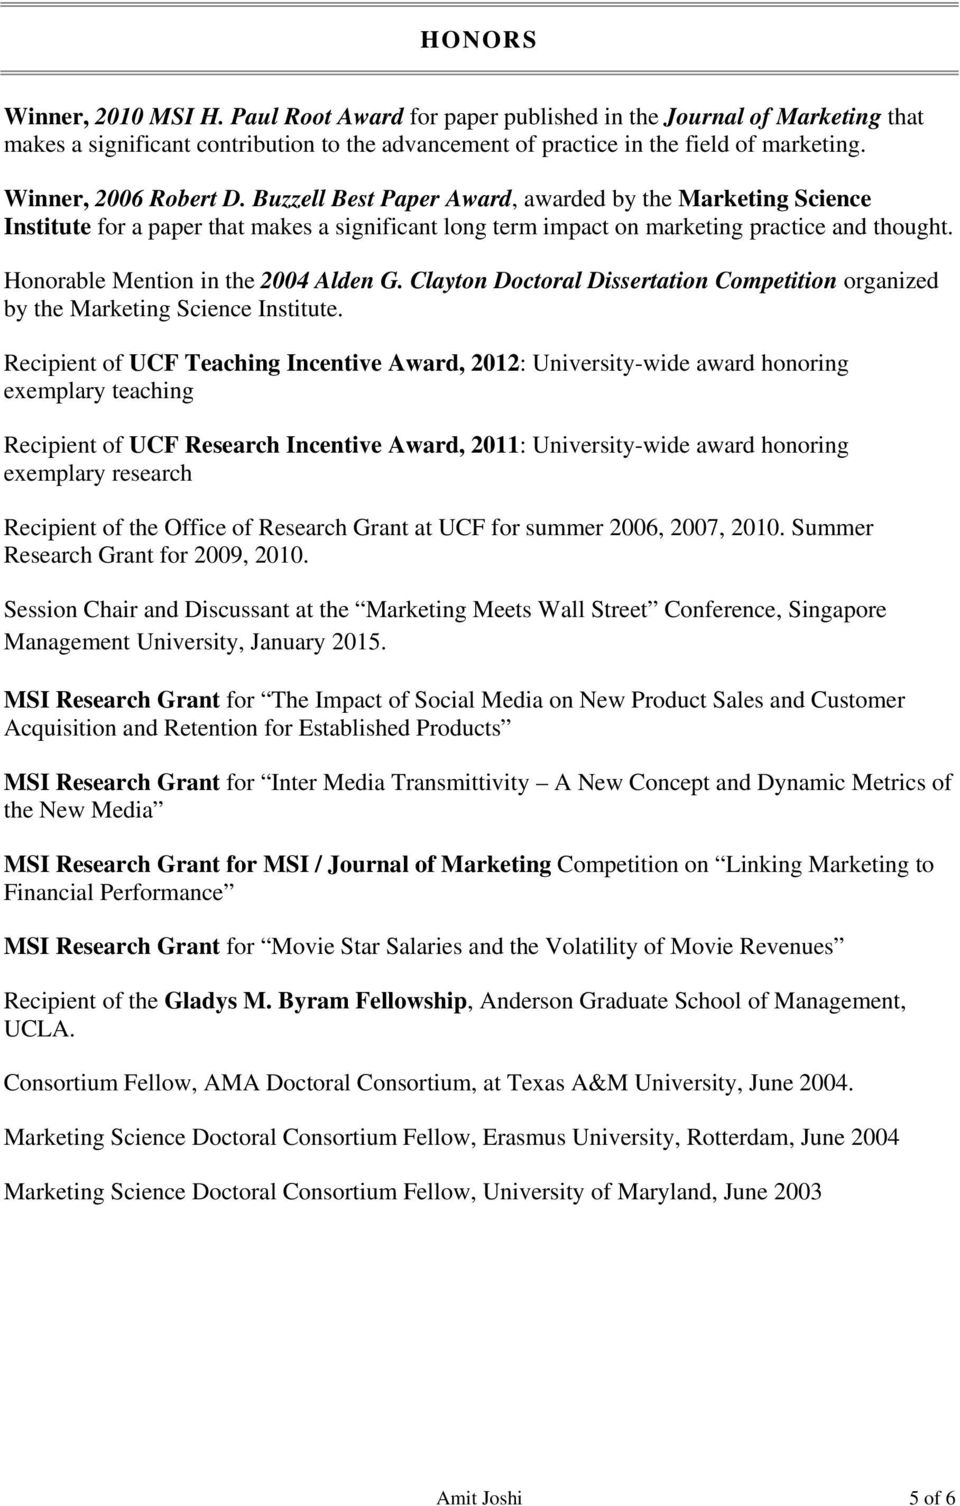 Honorable Mention in the 2004 Alden G. Clayton Doctoral Dissertation Competition organized by the Marketing Science Institute.